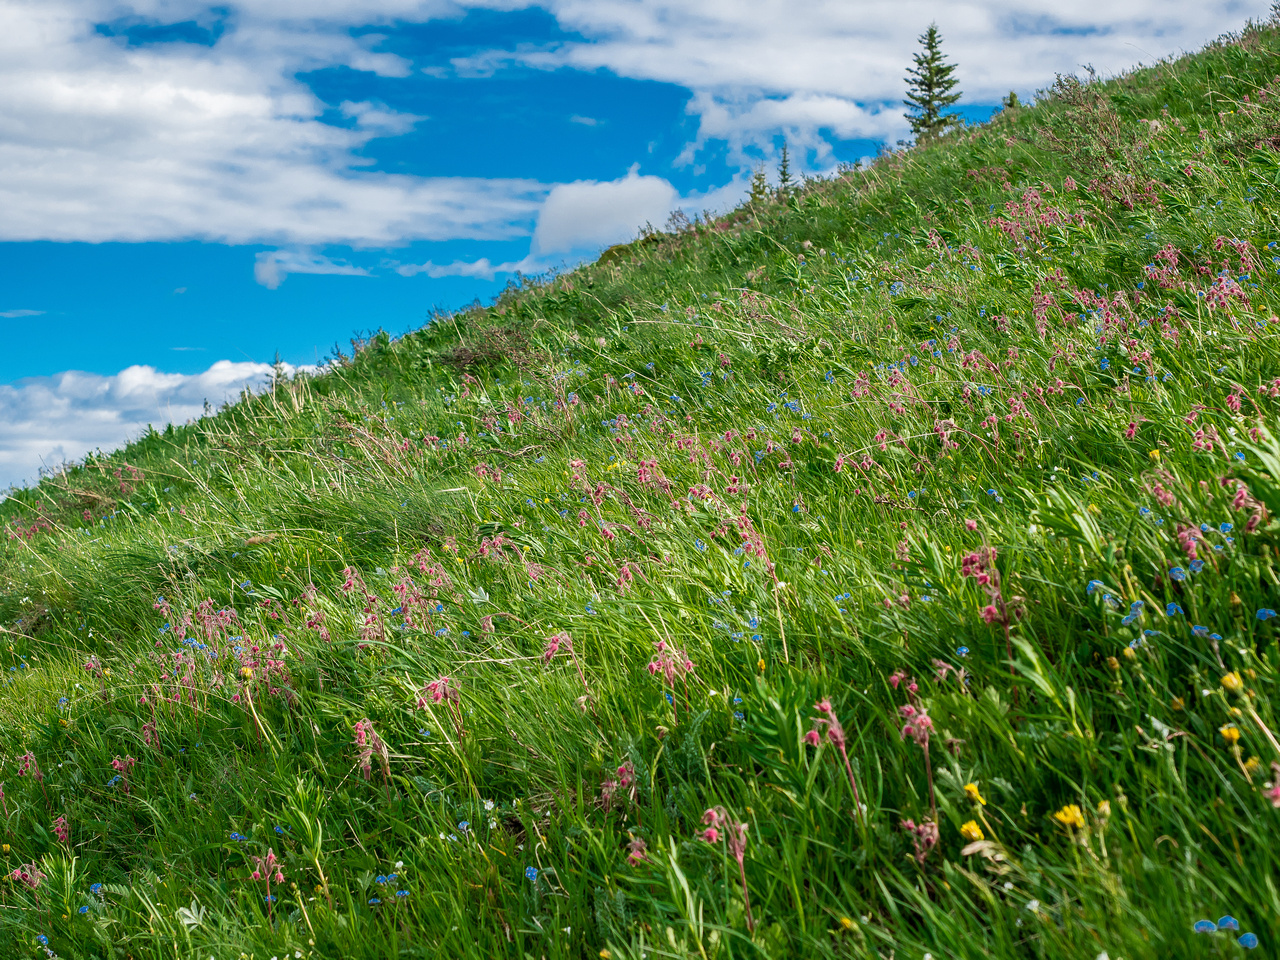 Acres of flowers along the trail in sublime alpine meadows.